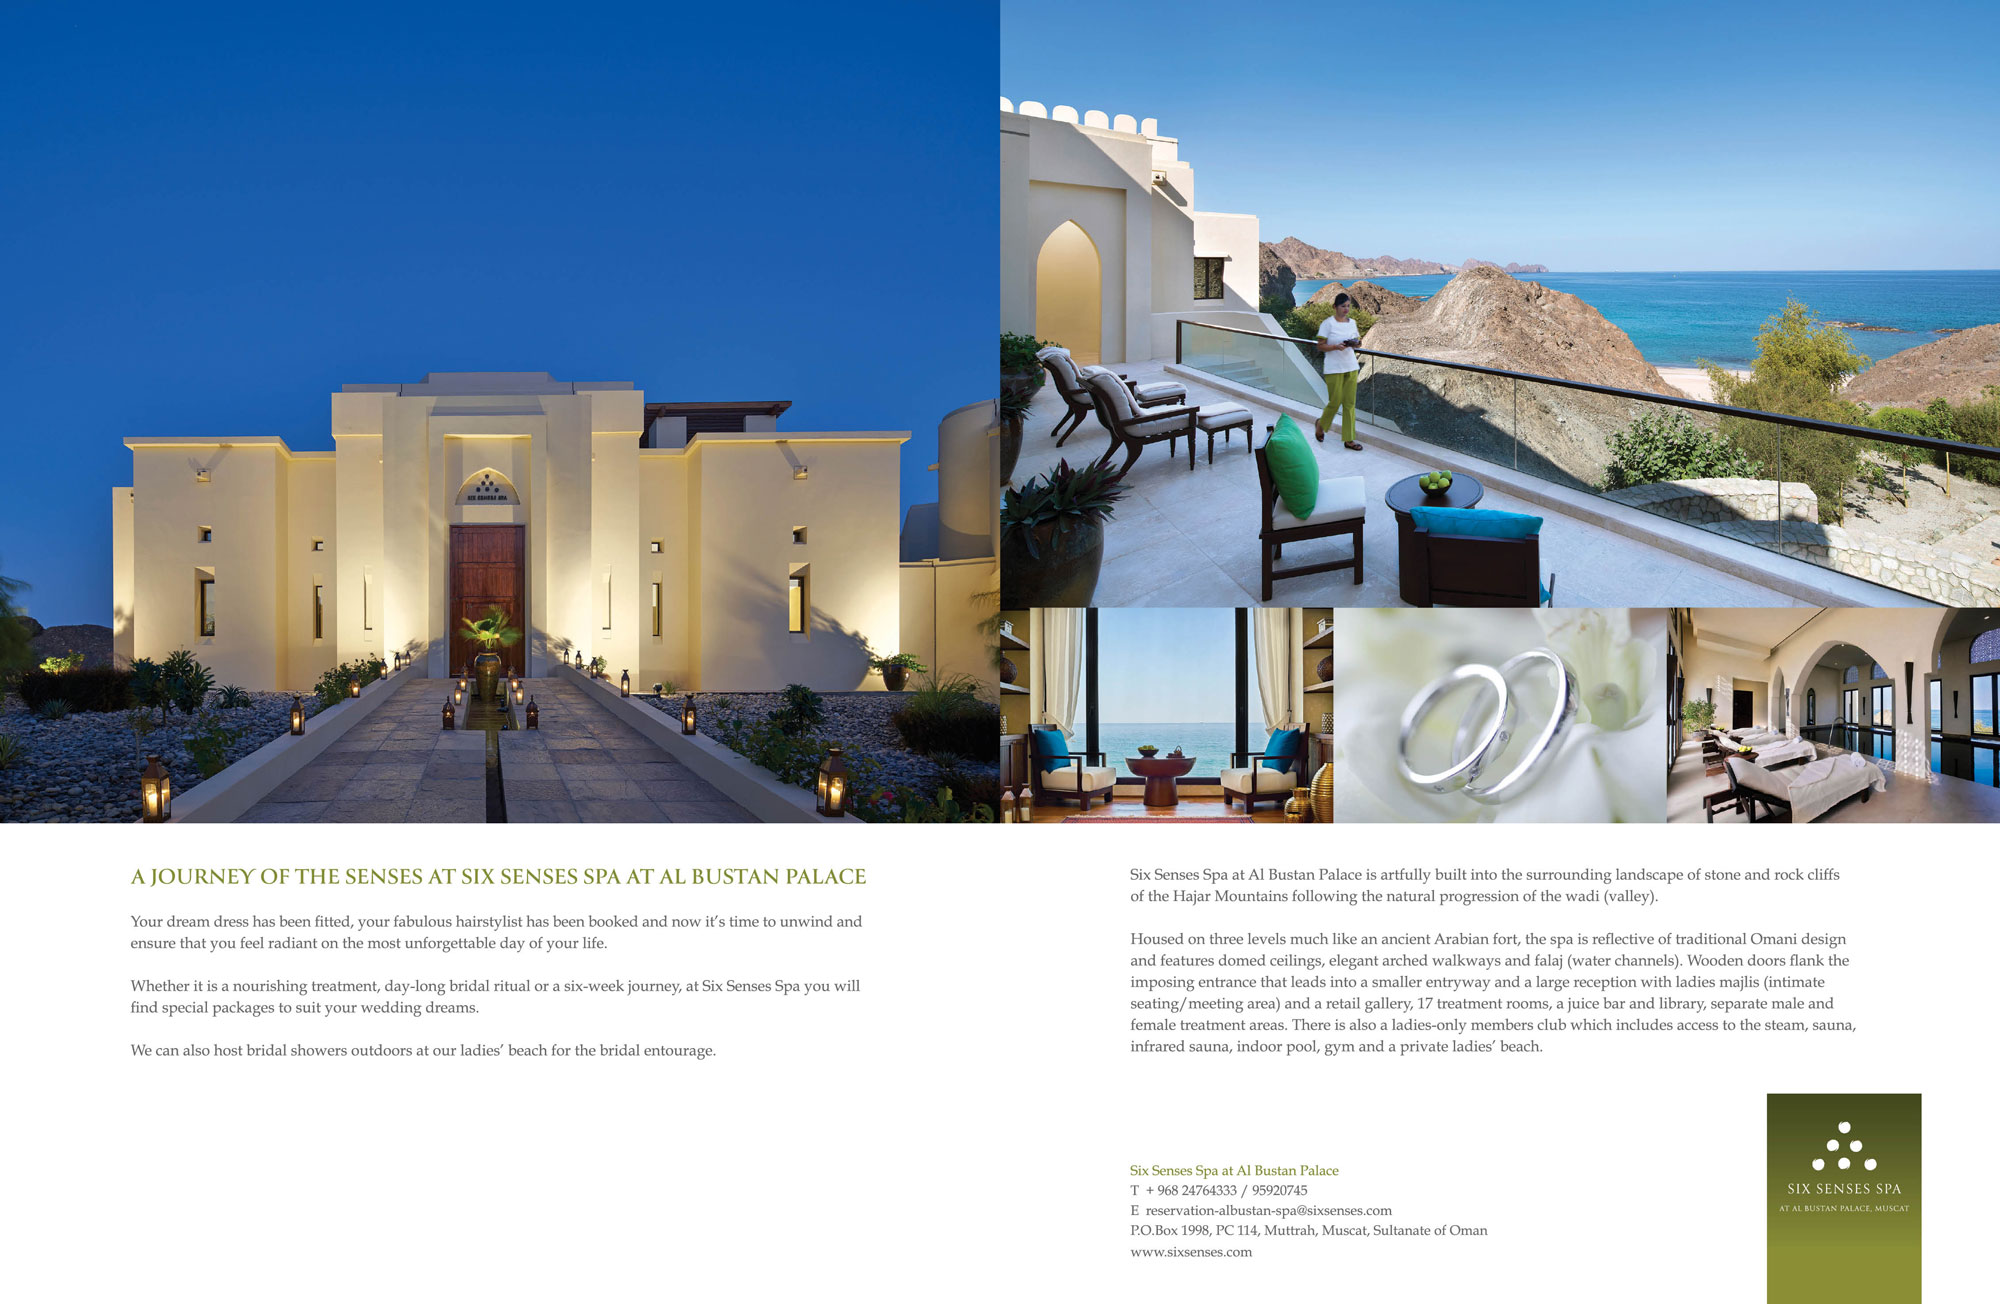 Six Senses Spa at Al Bustan Palace